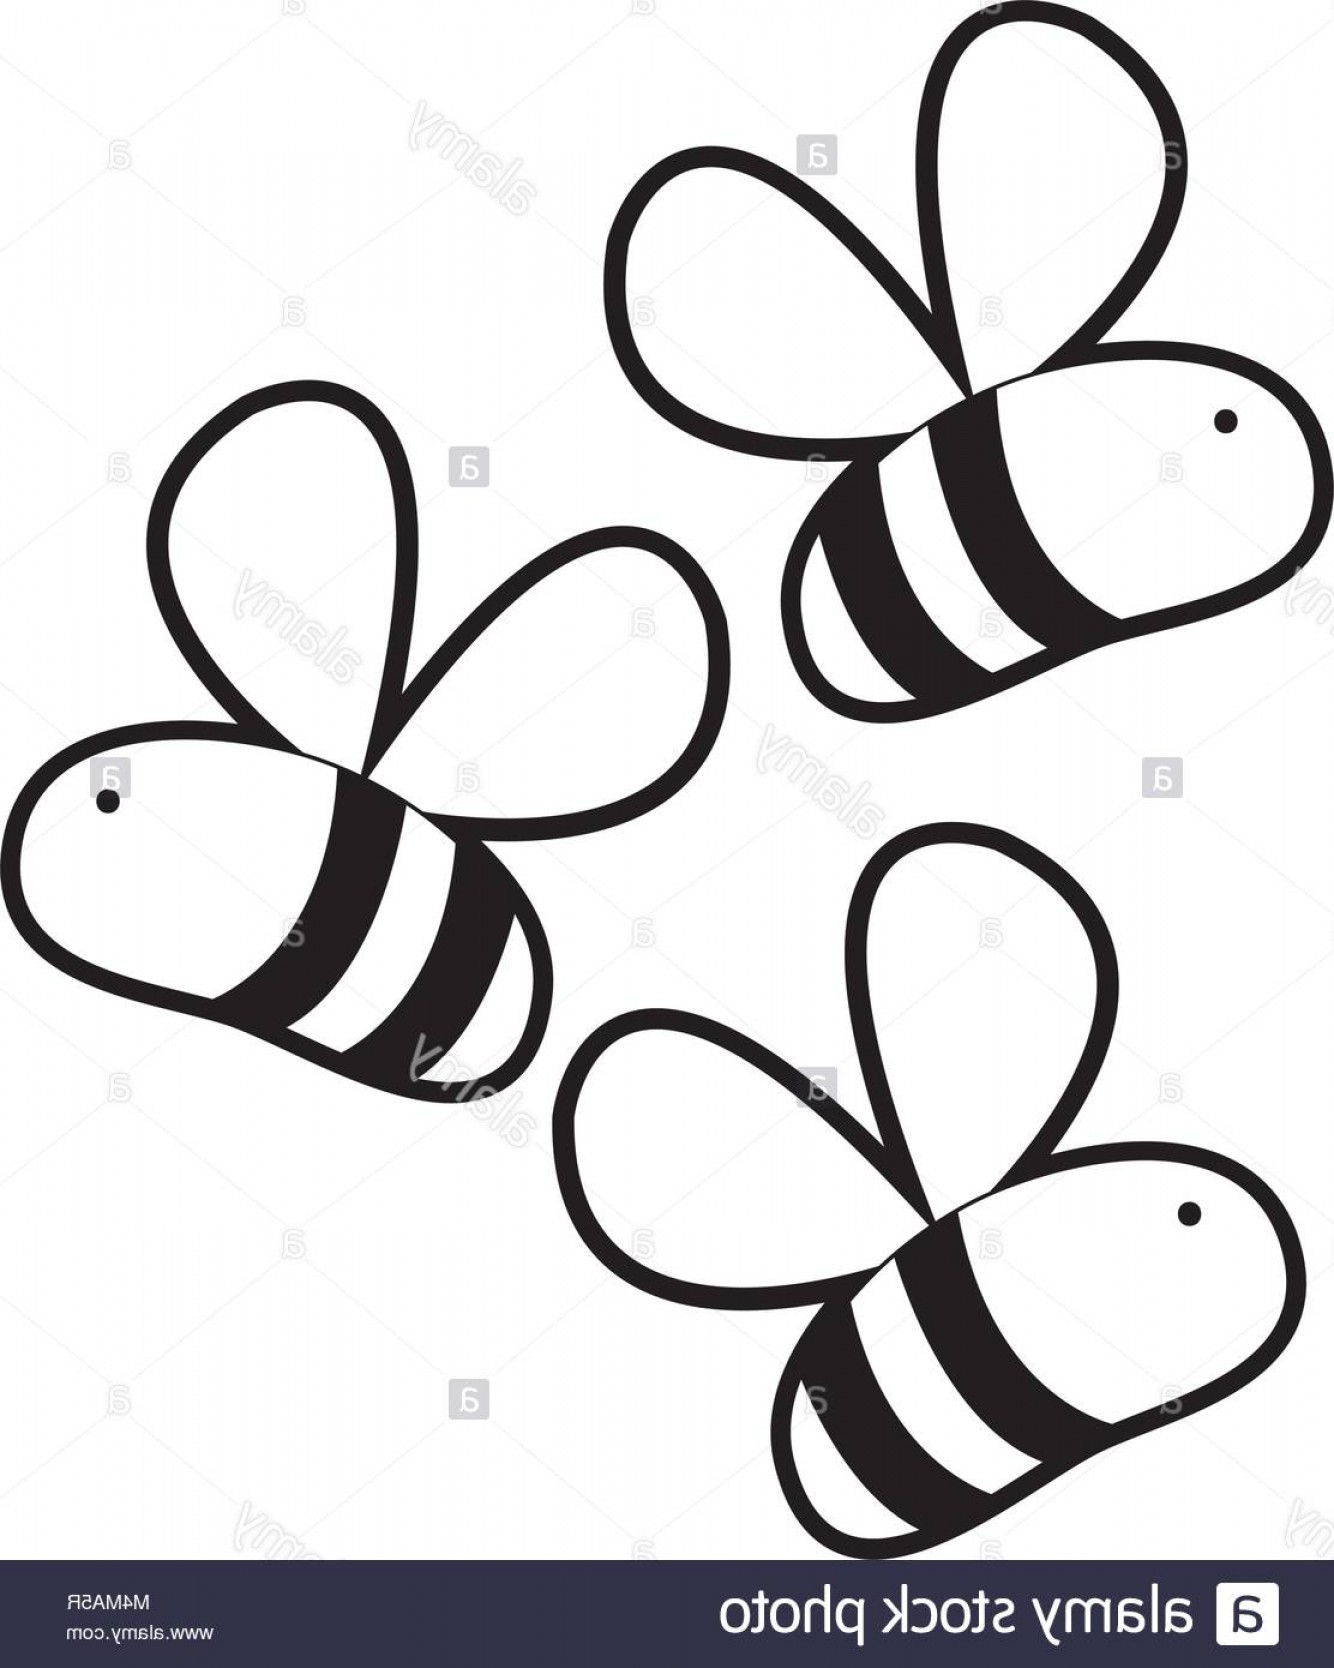 Bee Outline Vector: Stock Photo Outline Cute Bees Insect Animal Flying